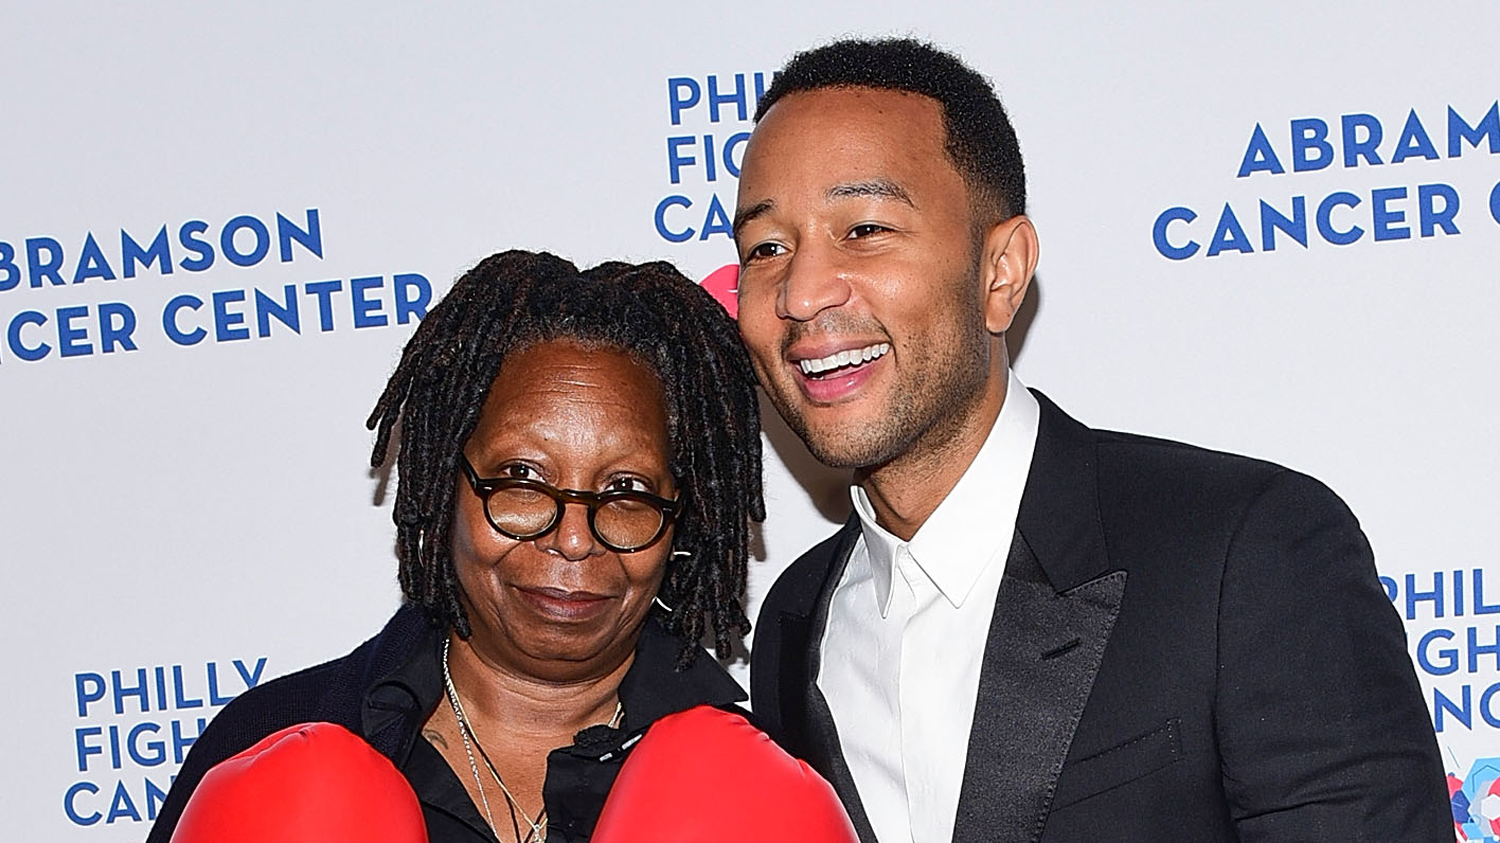 John Legend Joins Whoopi Goldberg At Philly Fights Cancer